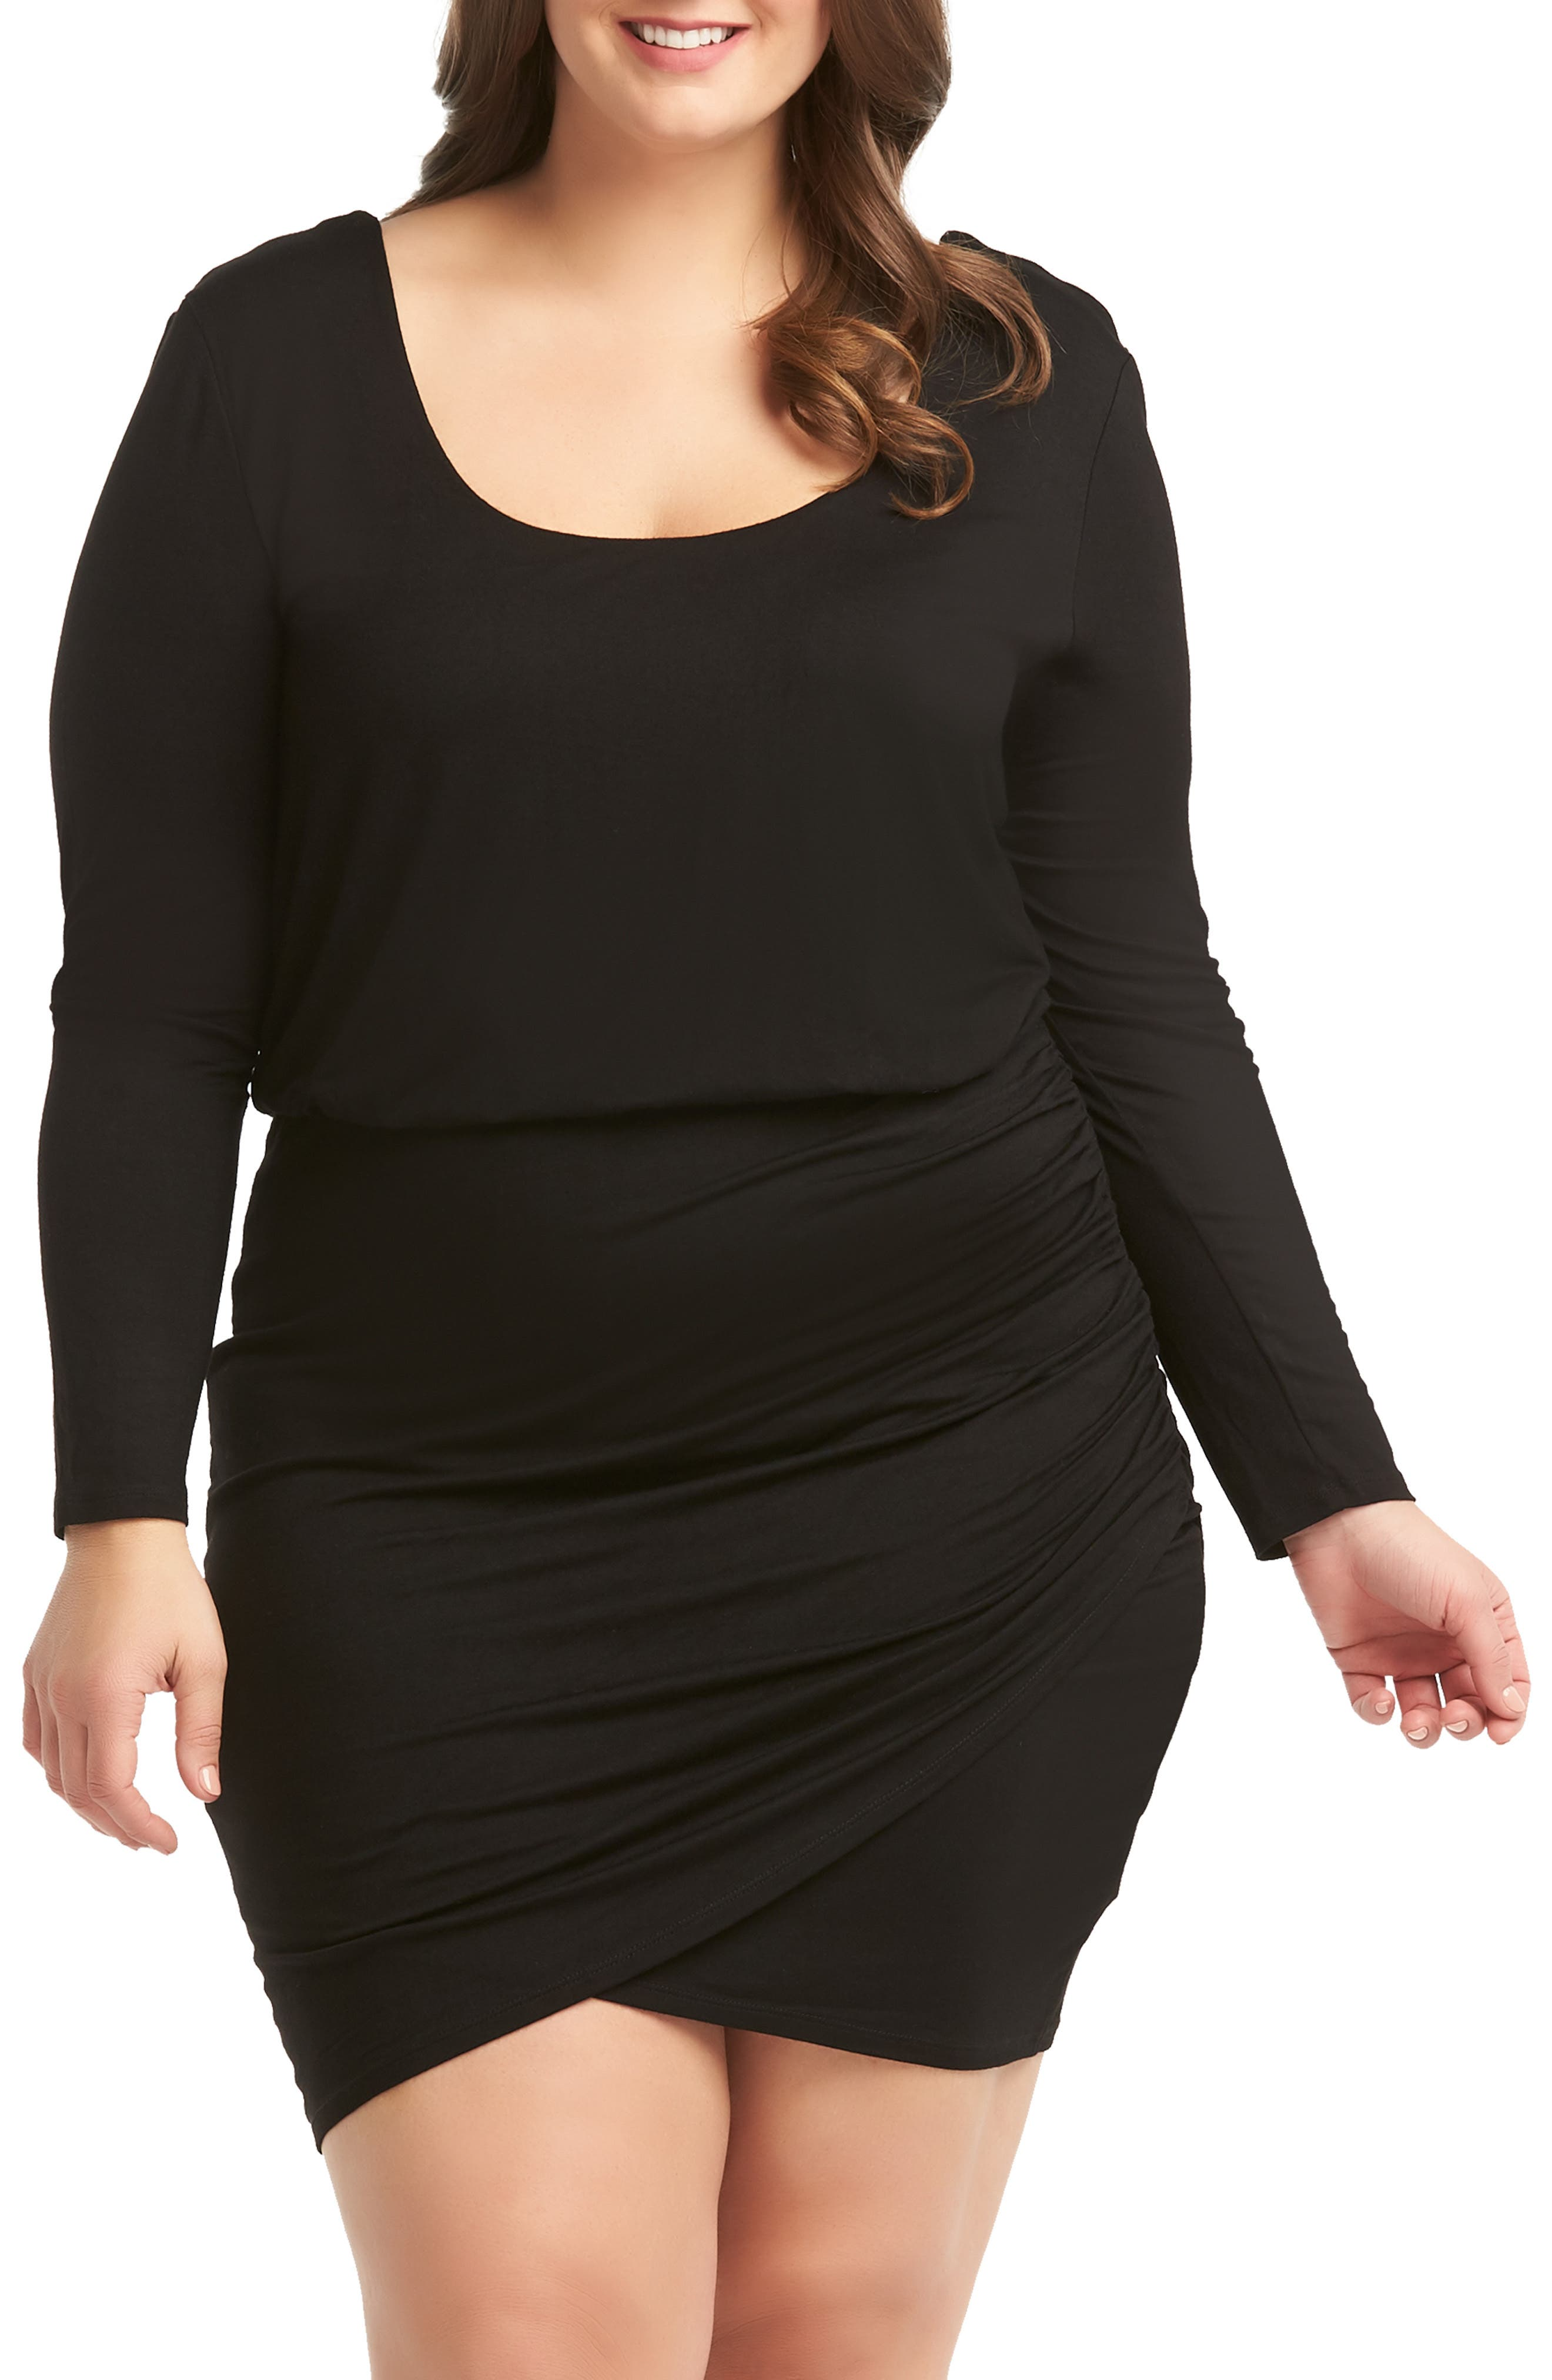 Plus Size Lemon Tart Dennis Ruched Wrap Look Dress, Black